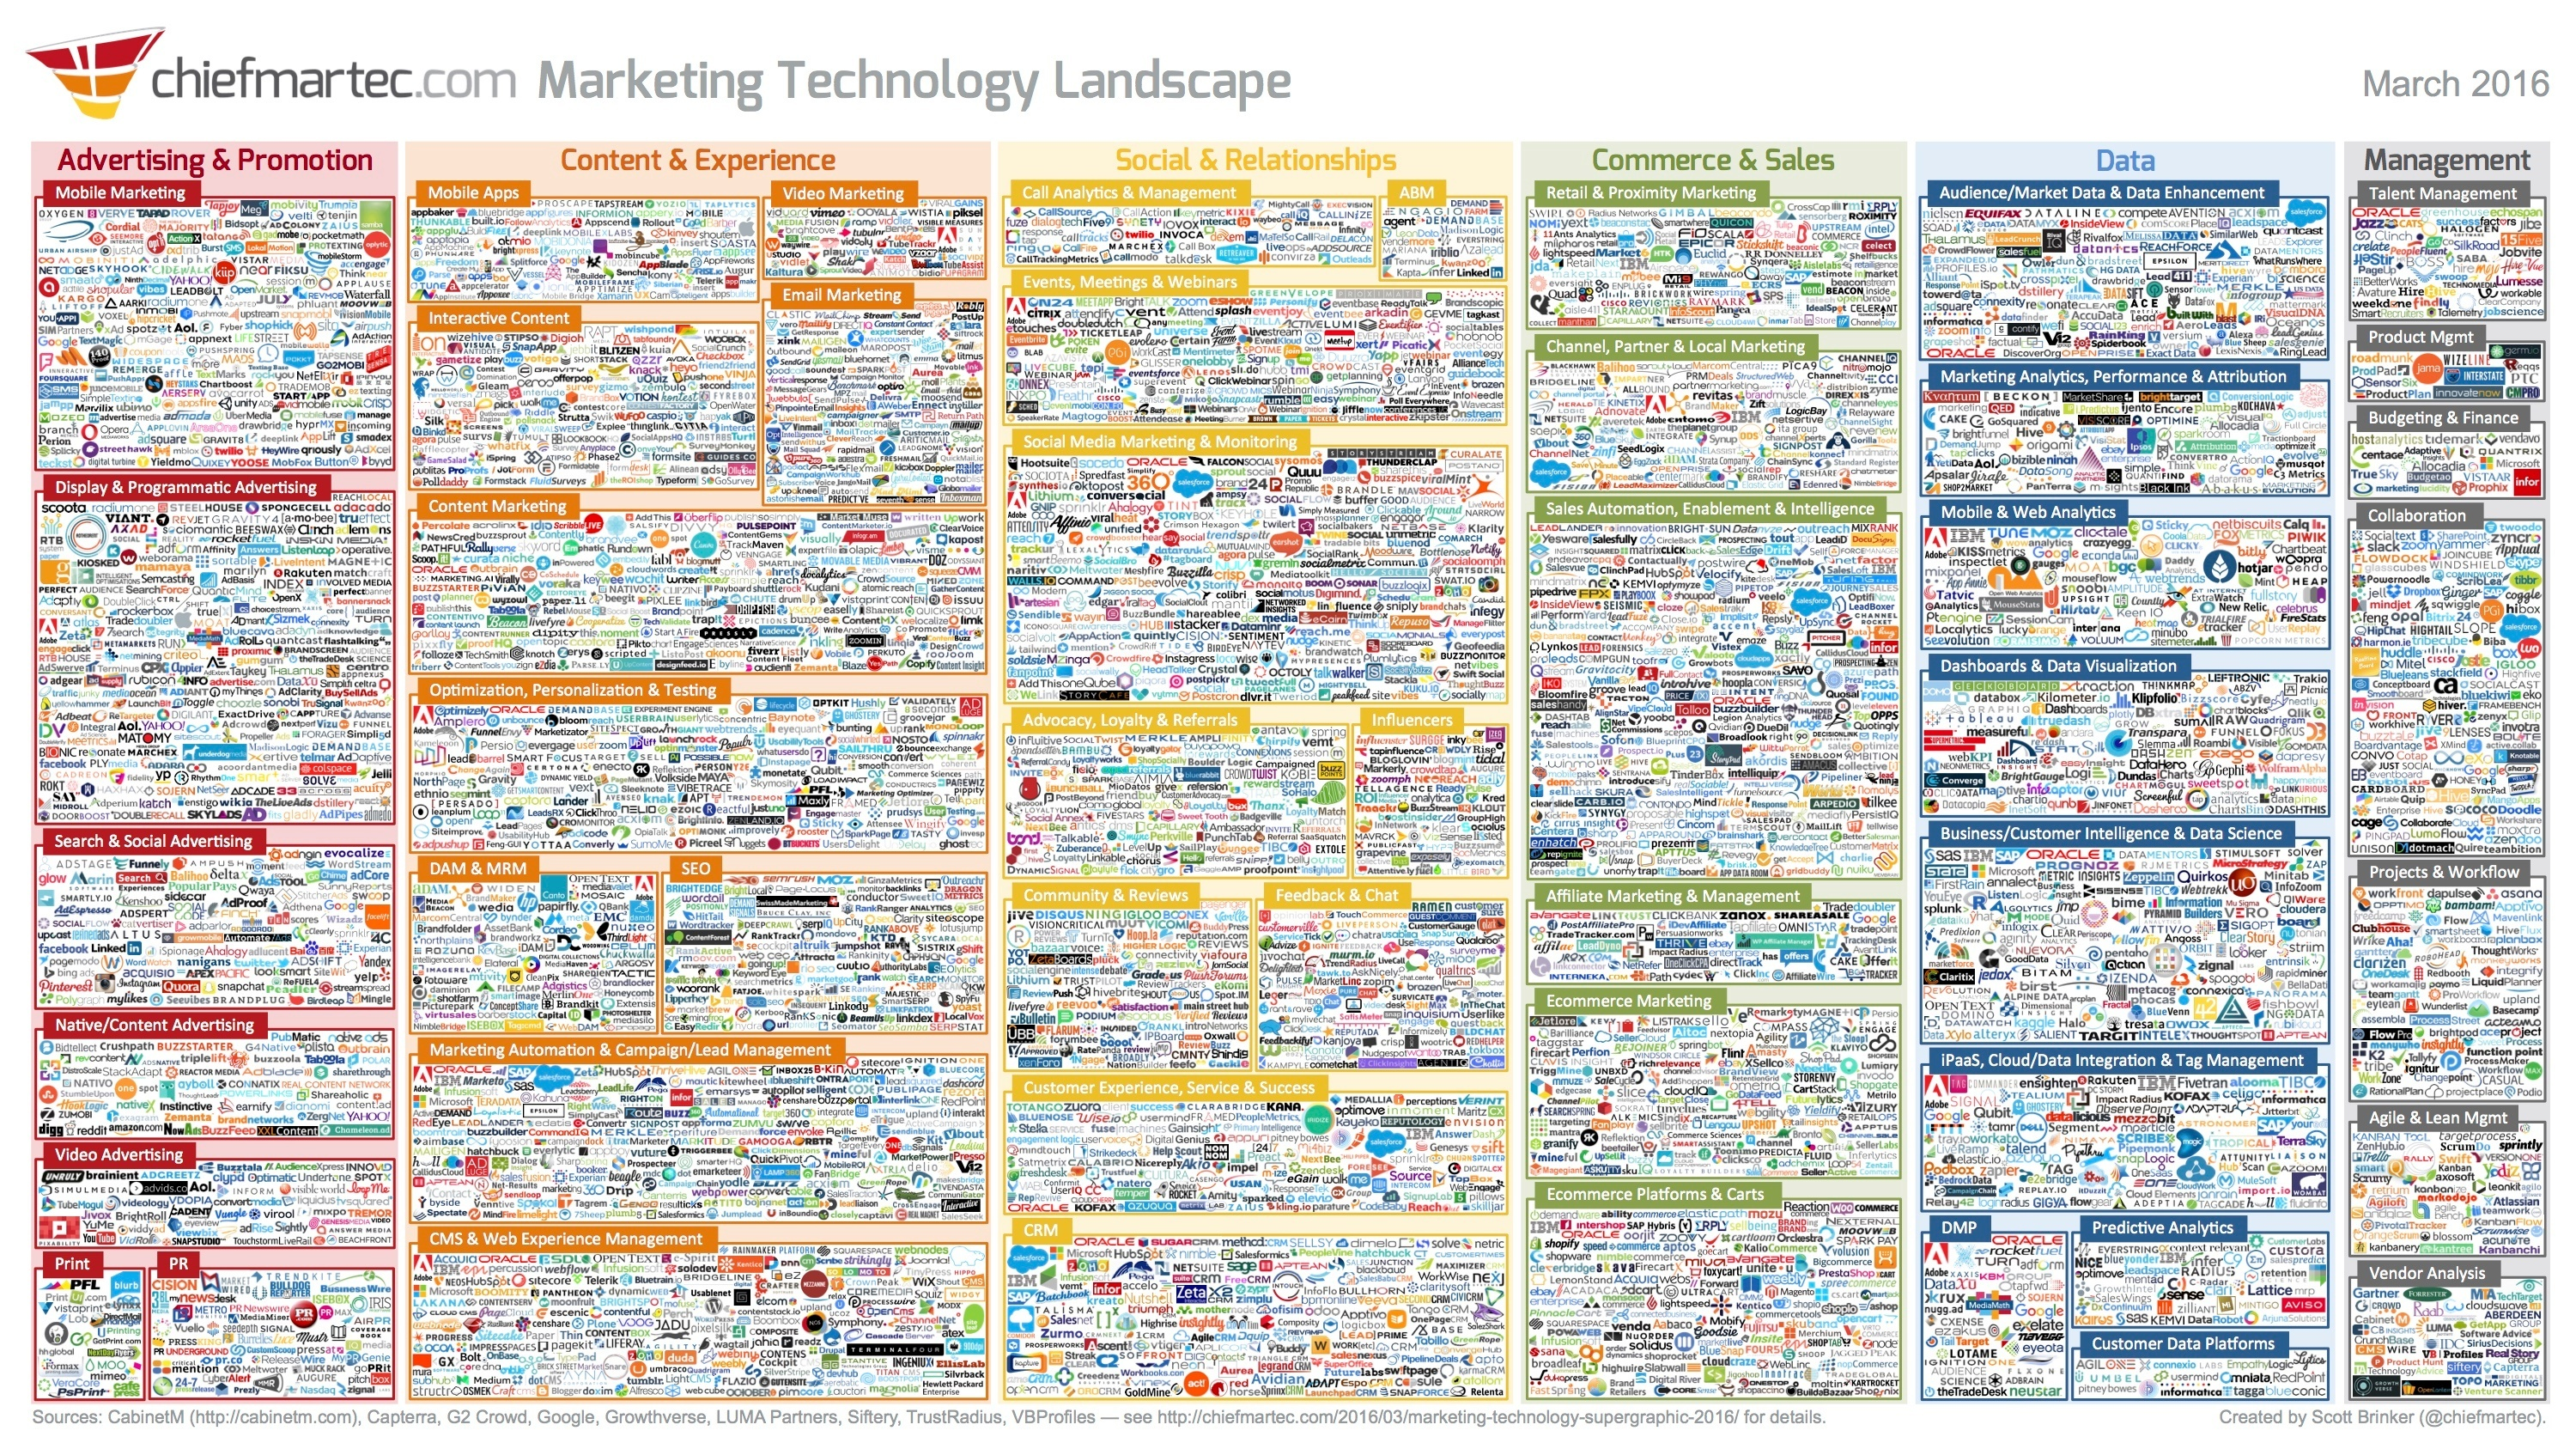 marketing_technology_landscape_2016_3000px-1.jpg